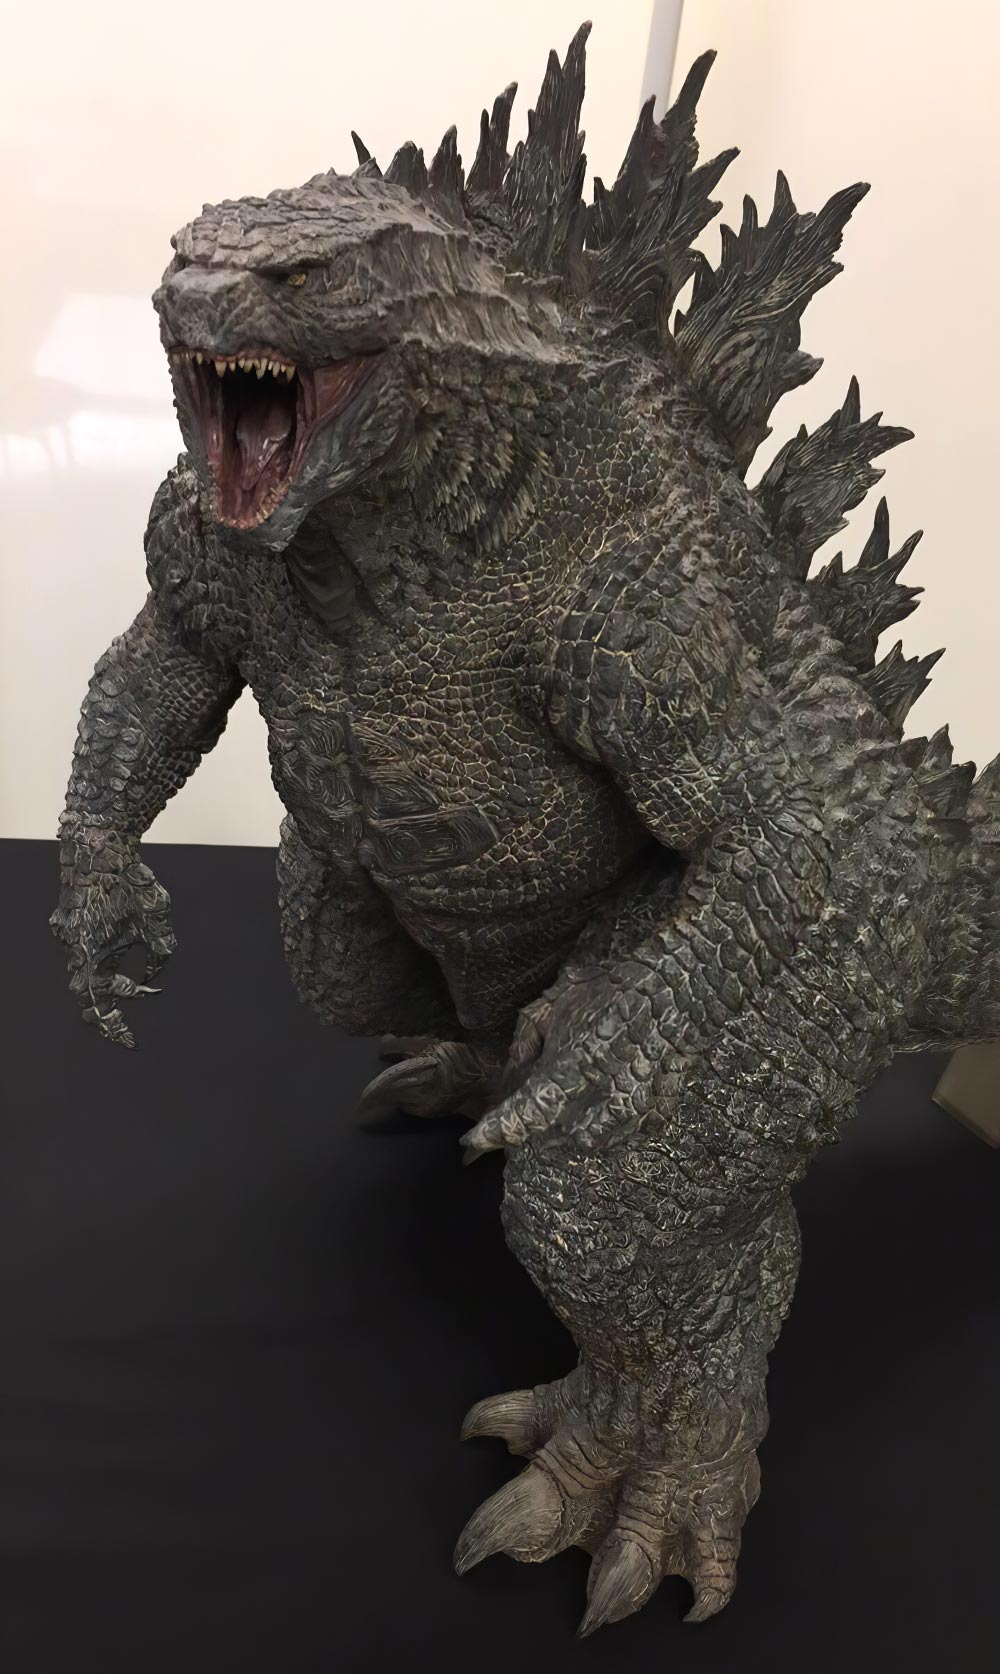 An image of the painted prototype of the X-Plus Gigantic Series Godzilla 2019.